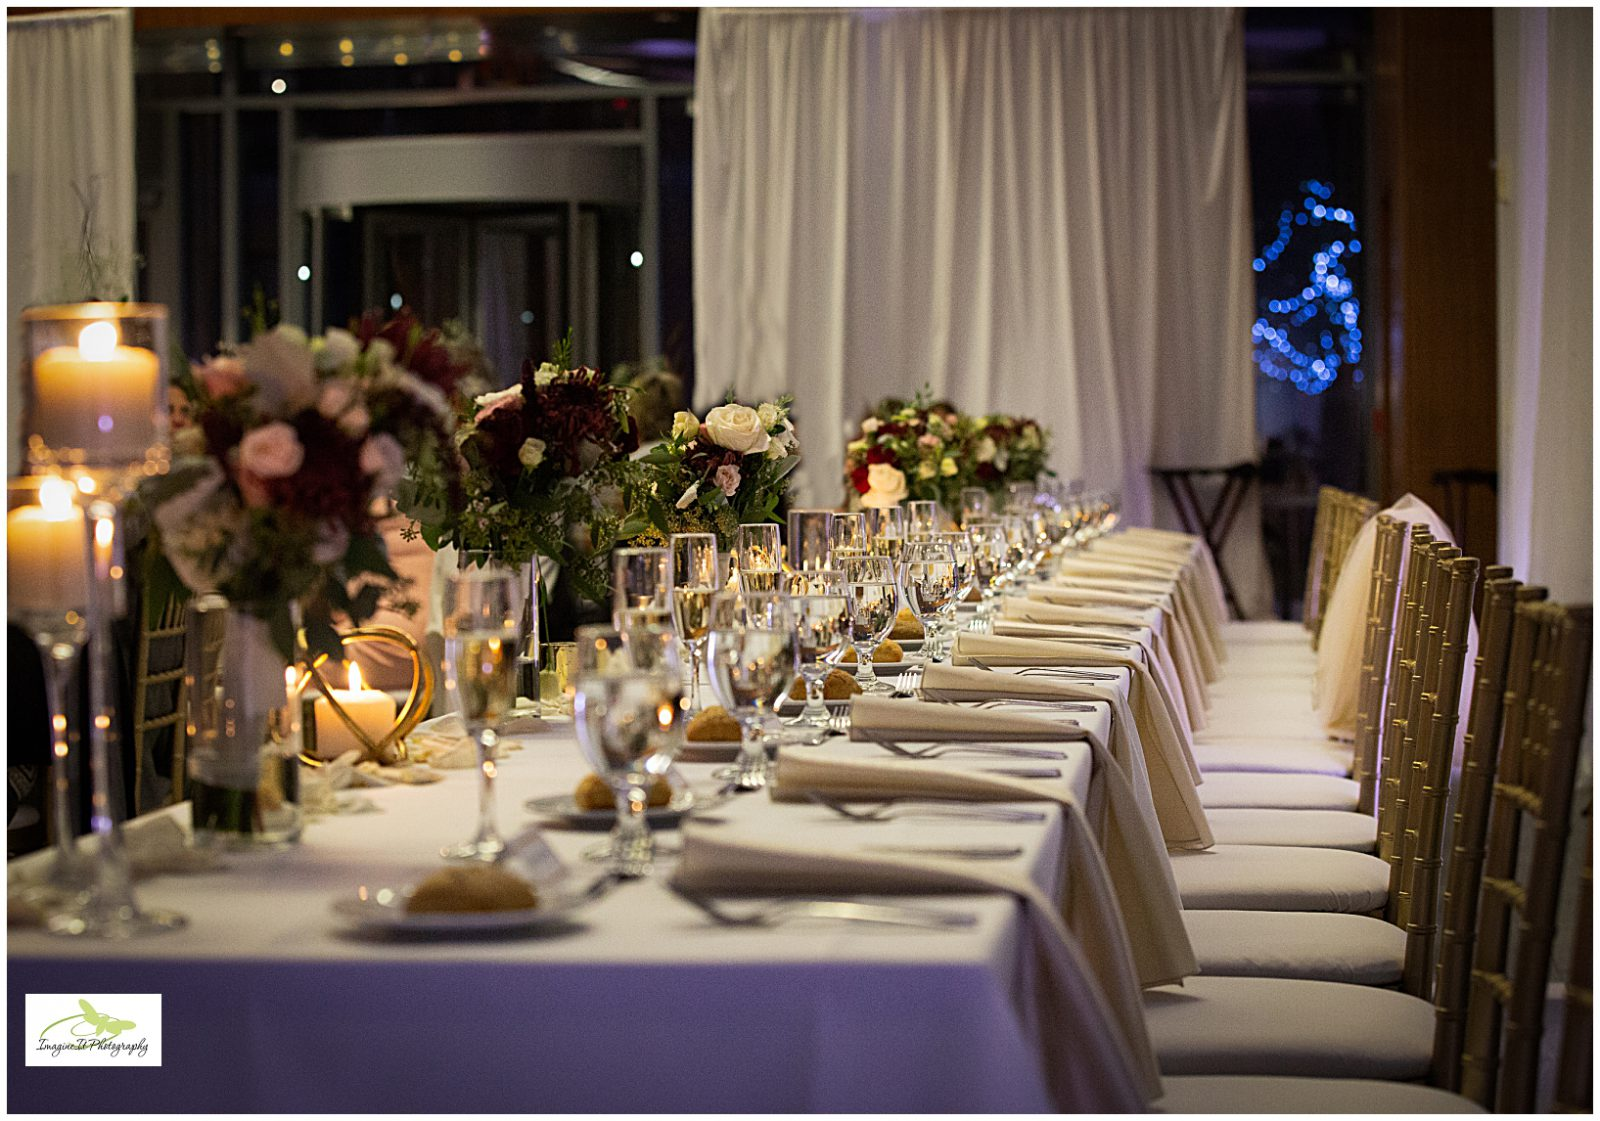 Candle-lit long dining table at Aloft Cleveland by Imagine It Photography